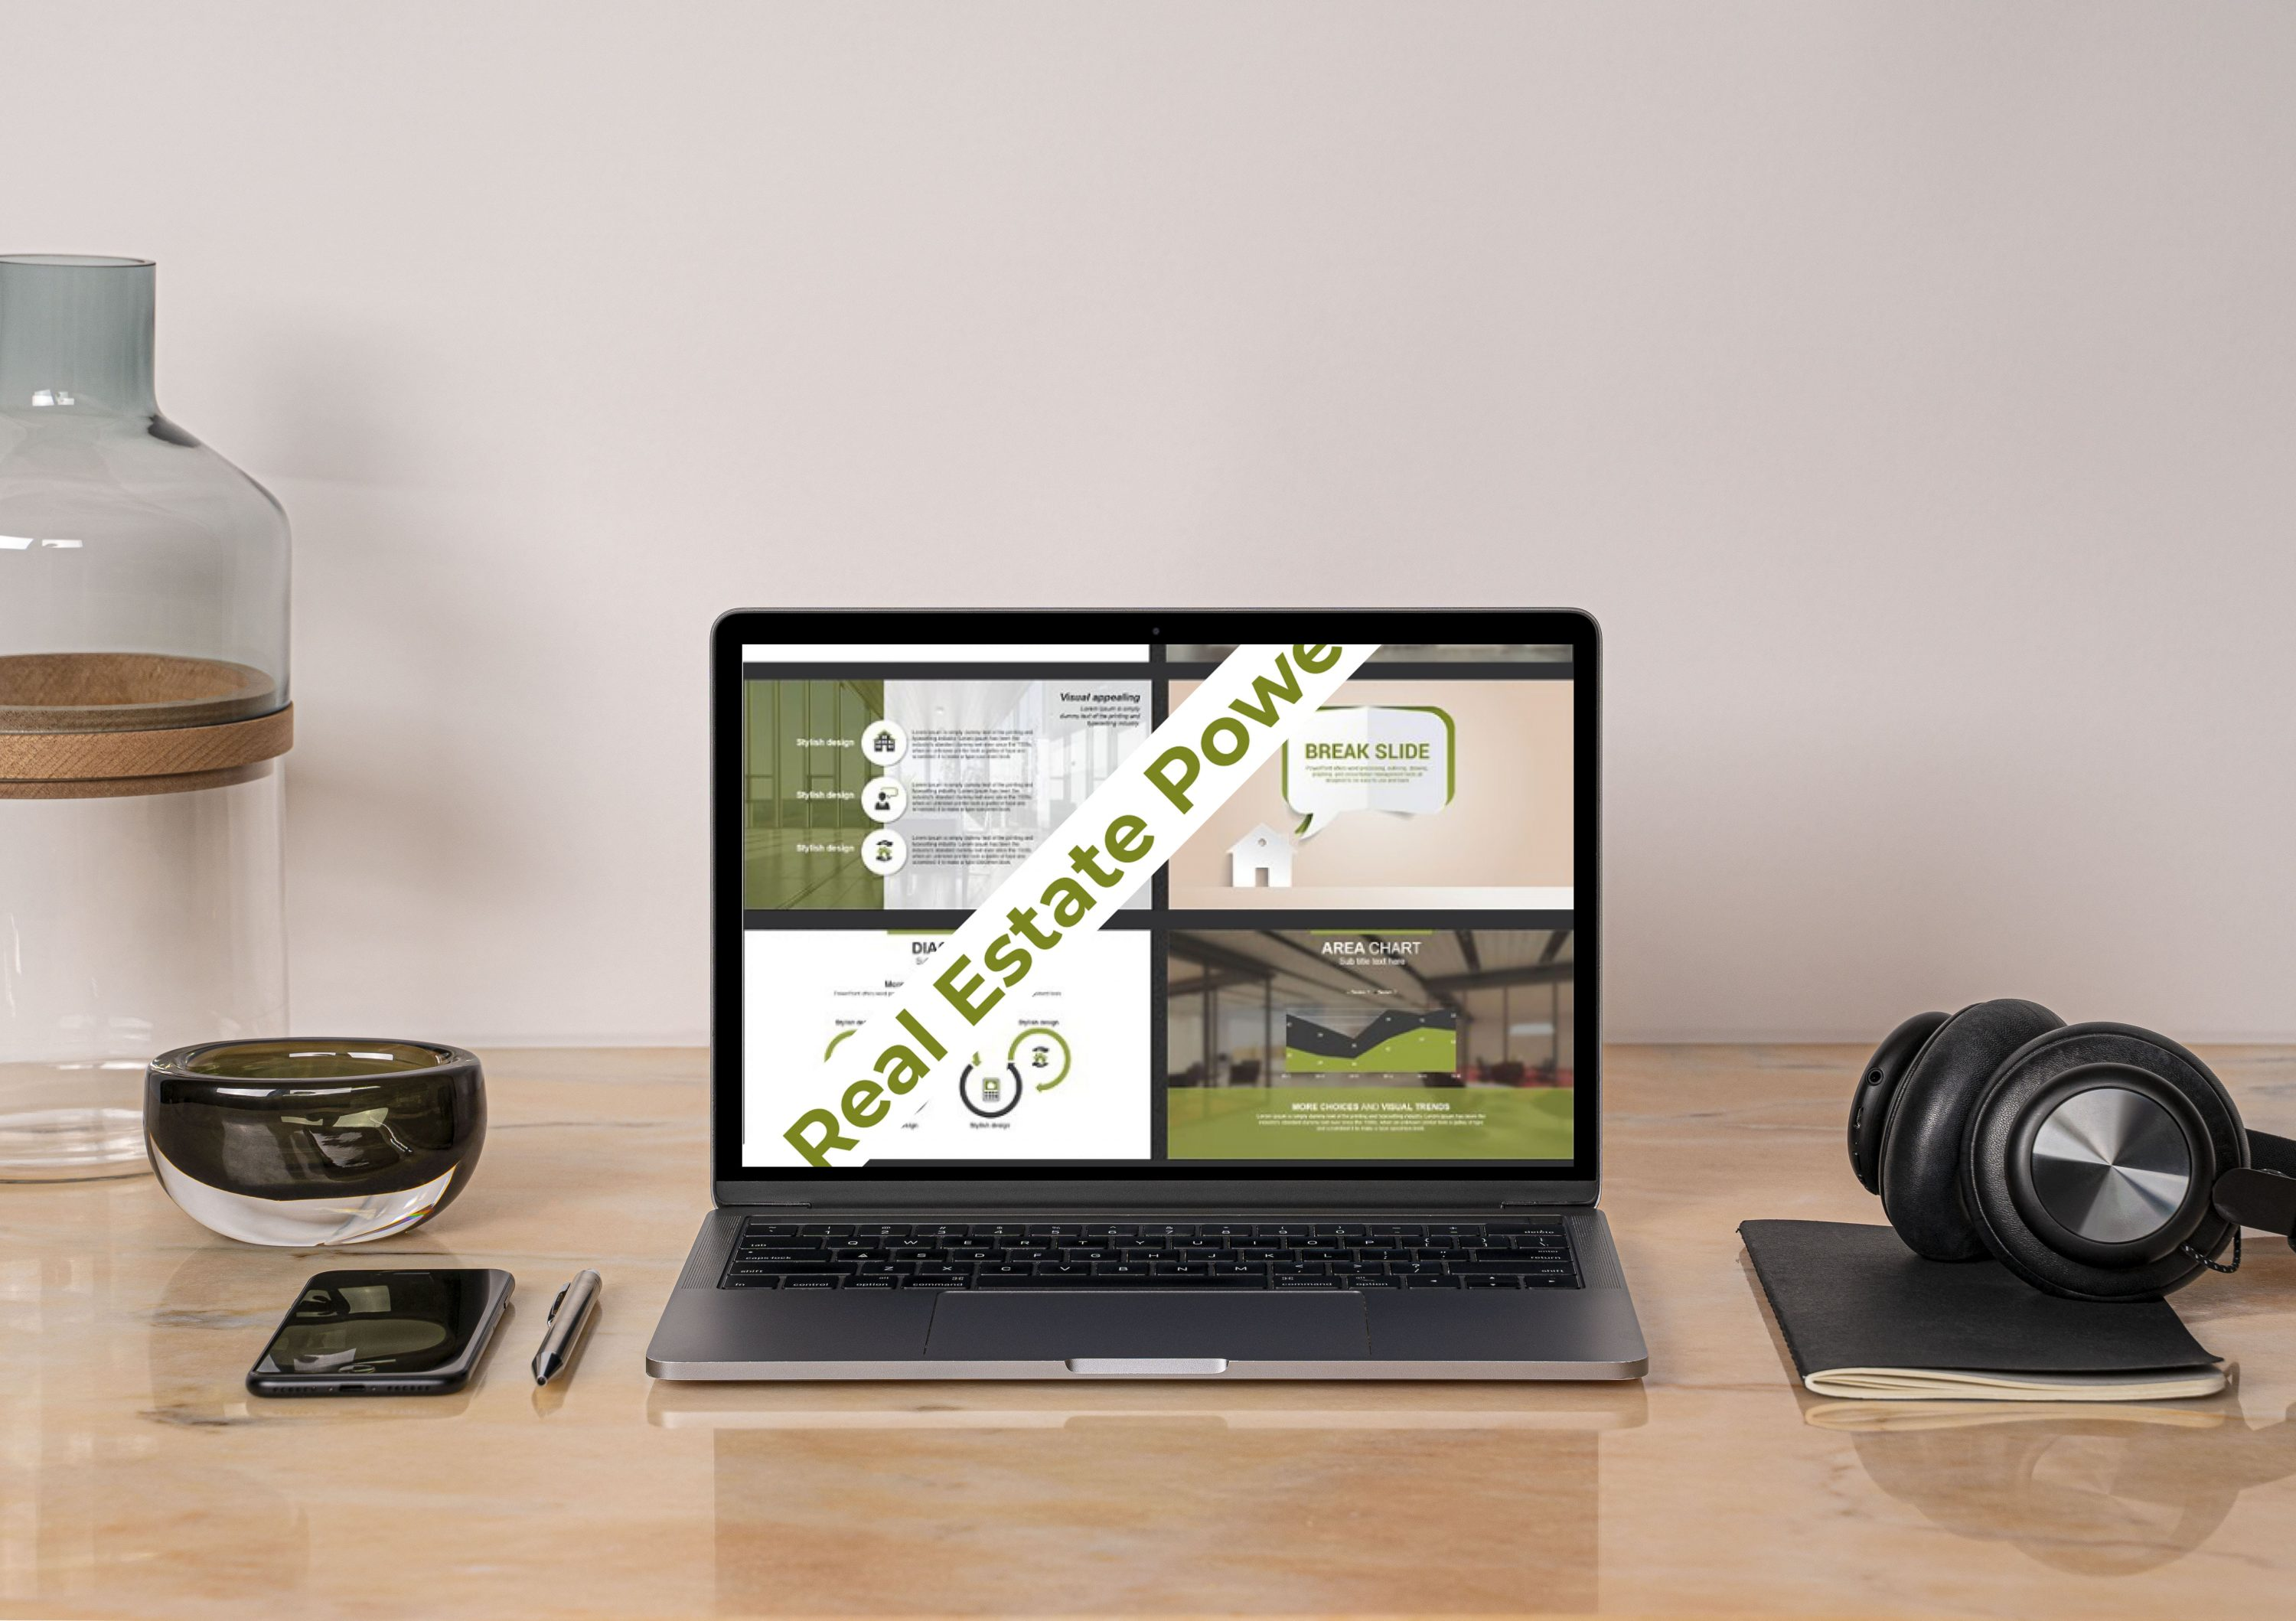 Real Estate PowerPoint Template by MasterBundles notebook preview mockup image.